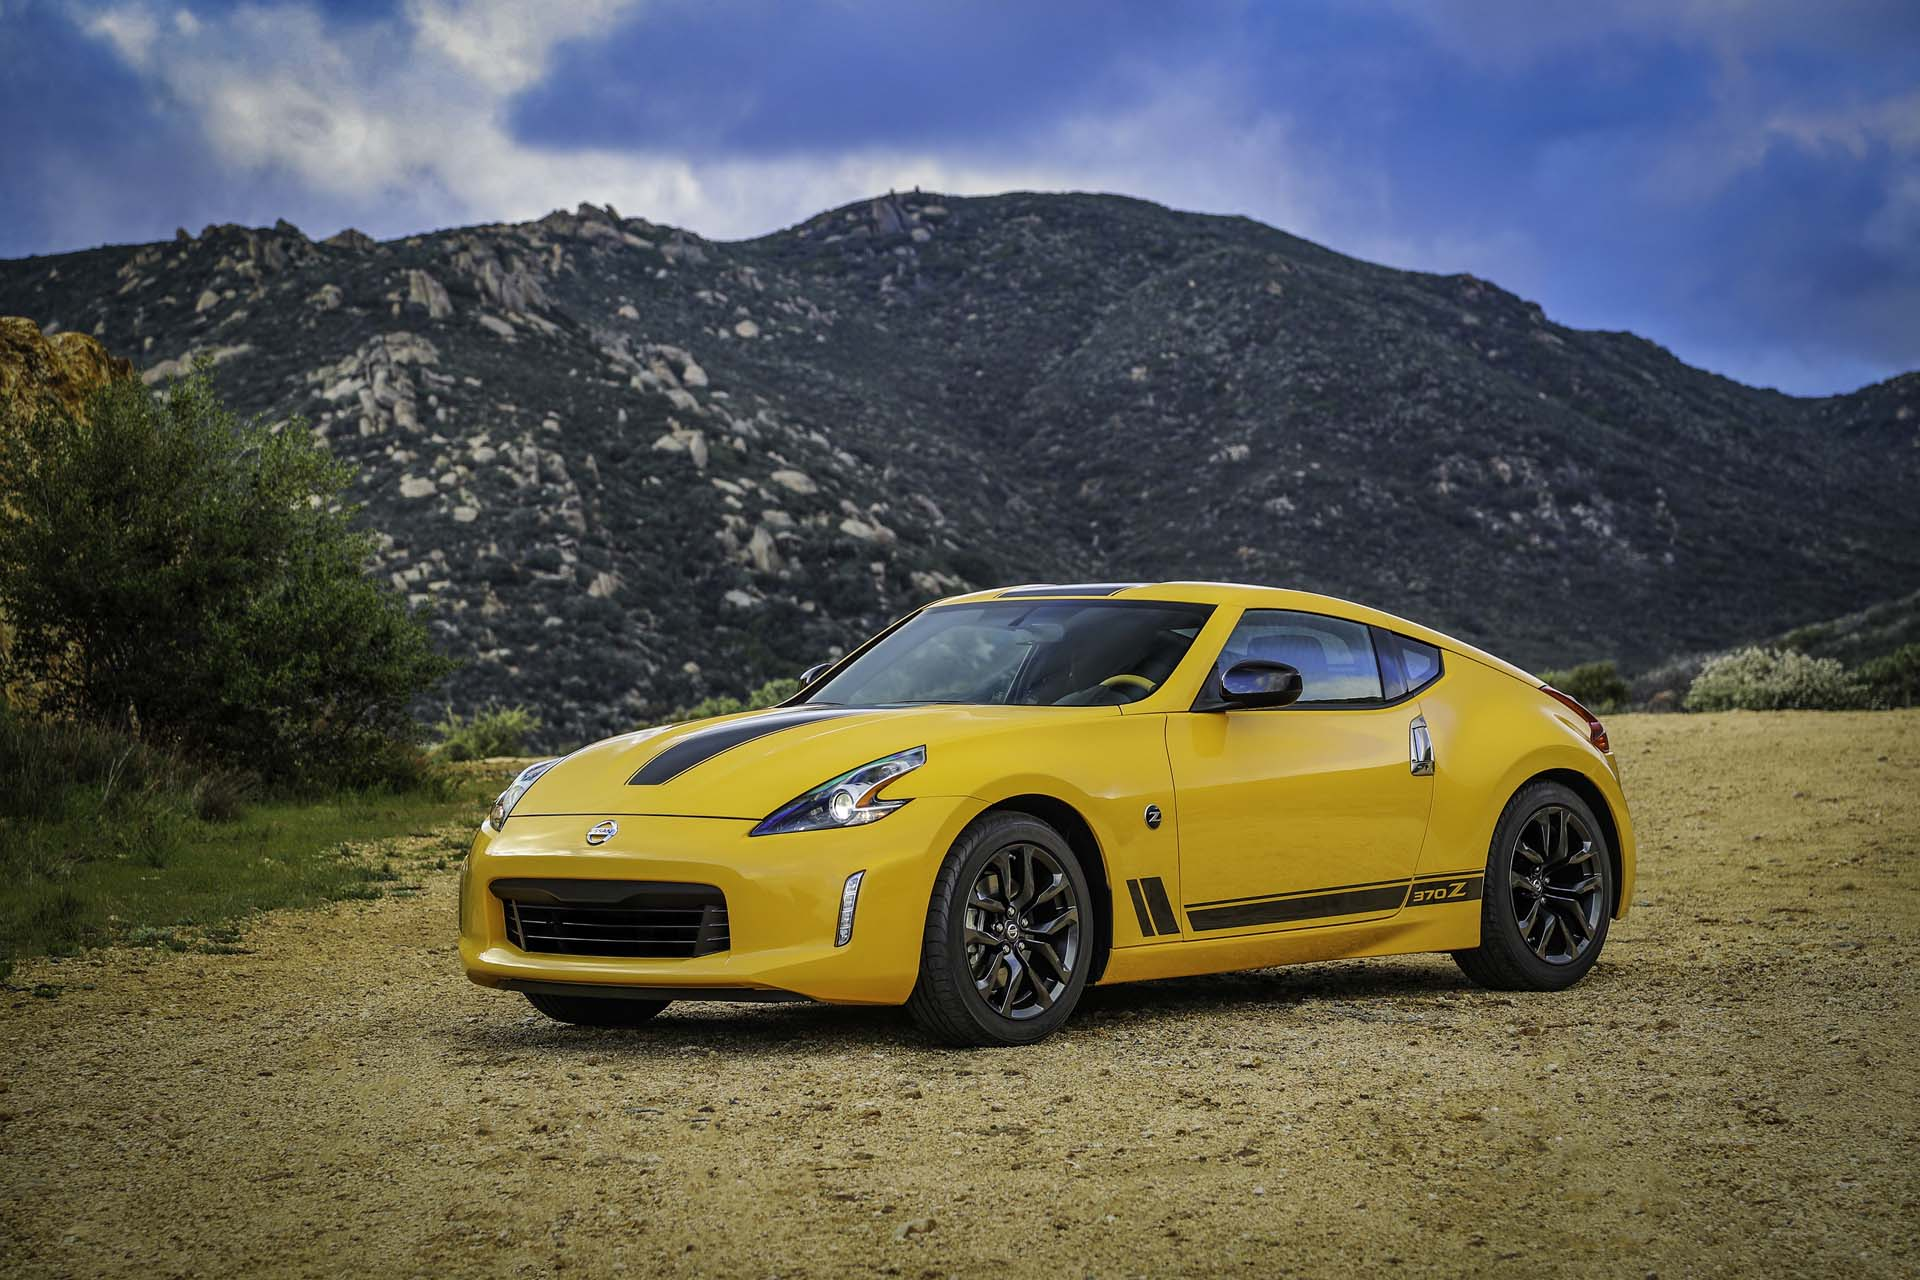 new and used nissan 370z prices photos reviews specs the car connection. Black Bedroom Furniture Sets. Home Design Ideas